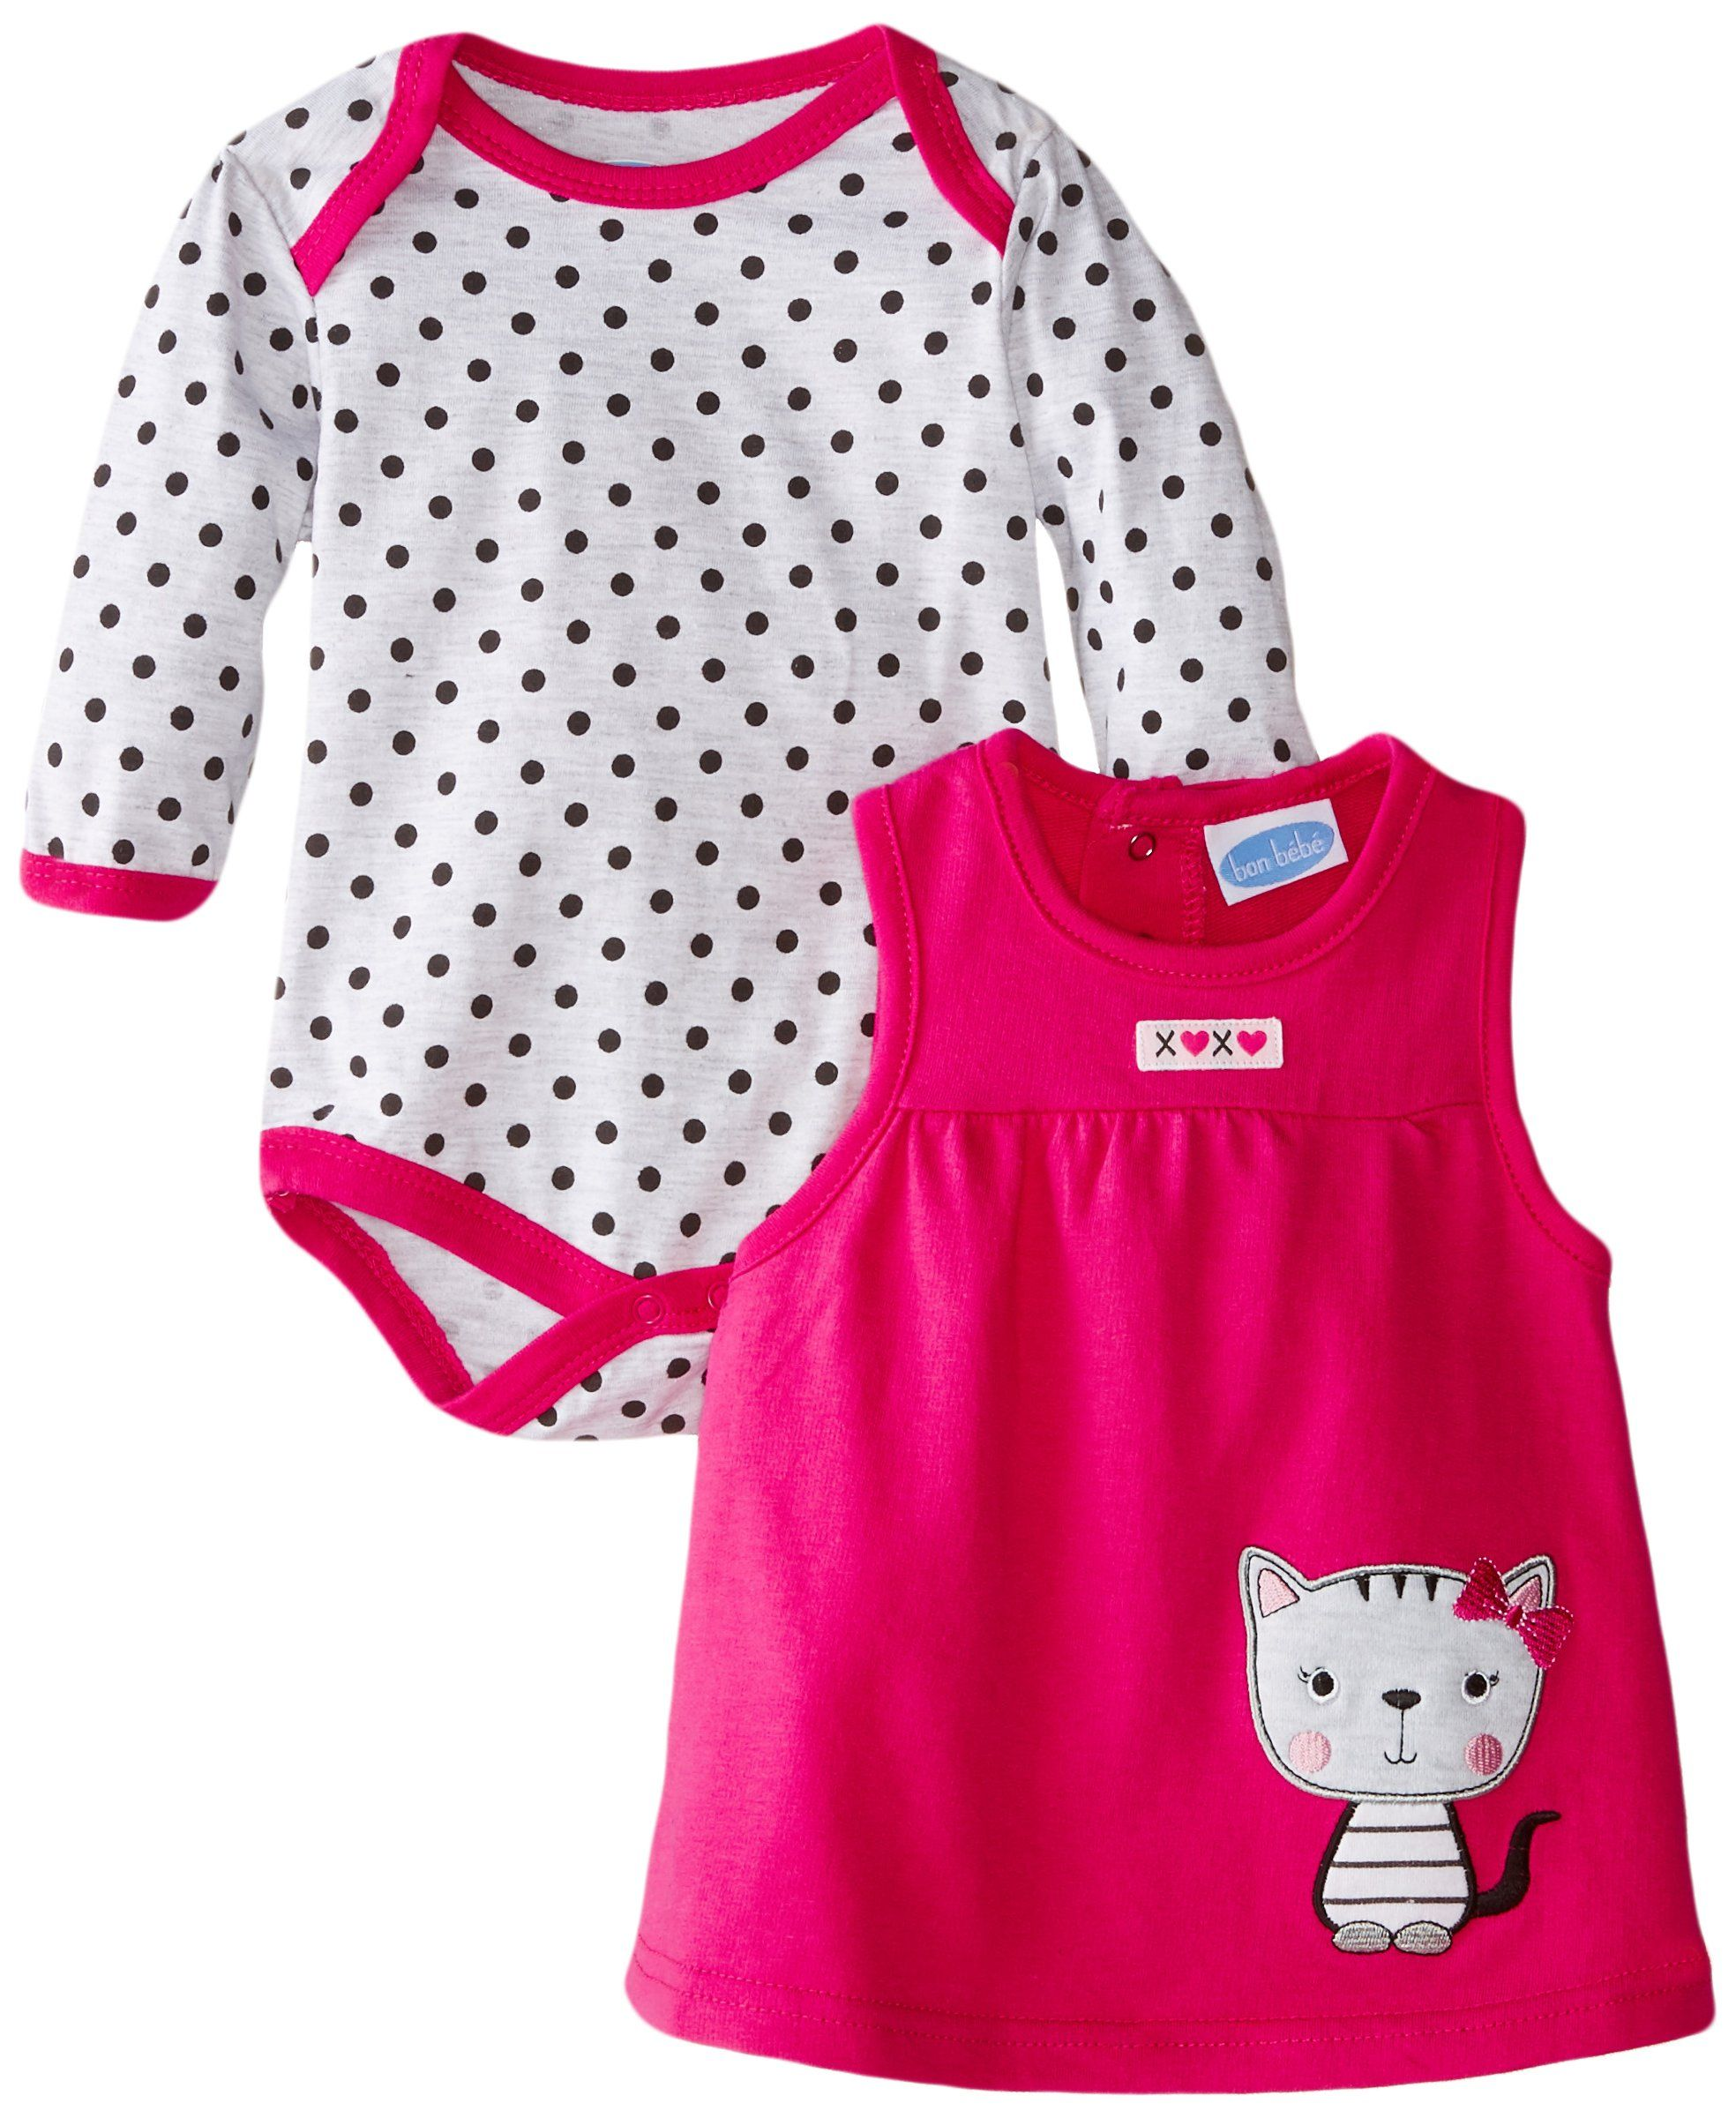 4bb68be86 BON BEBE Baby-Girls Newborn Kitty Cat and Polka Dots Bodysuit and French  Terry Jumper Set, Multi, 6-9 Months